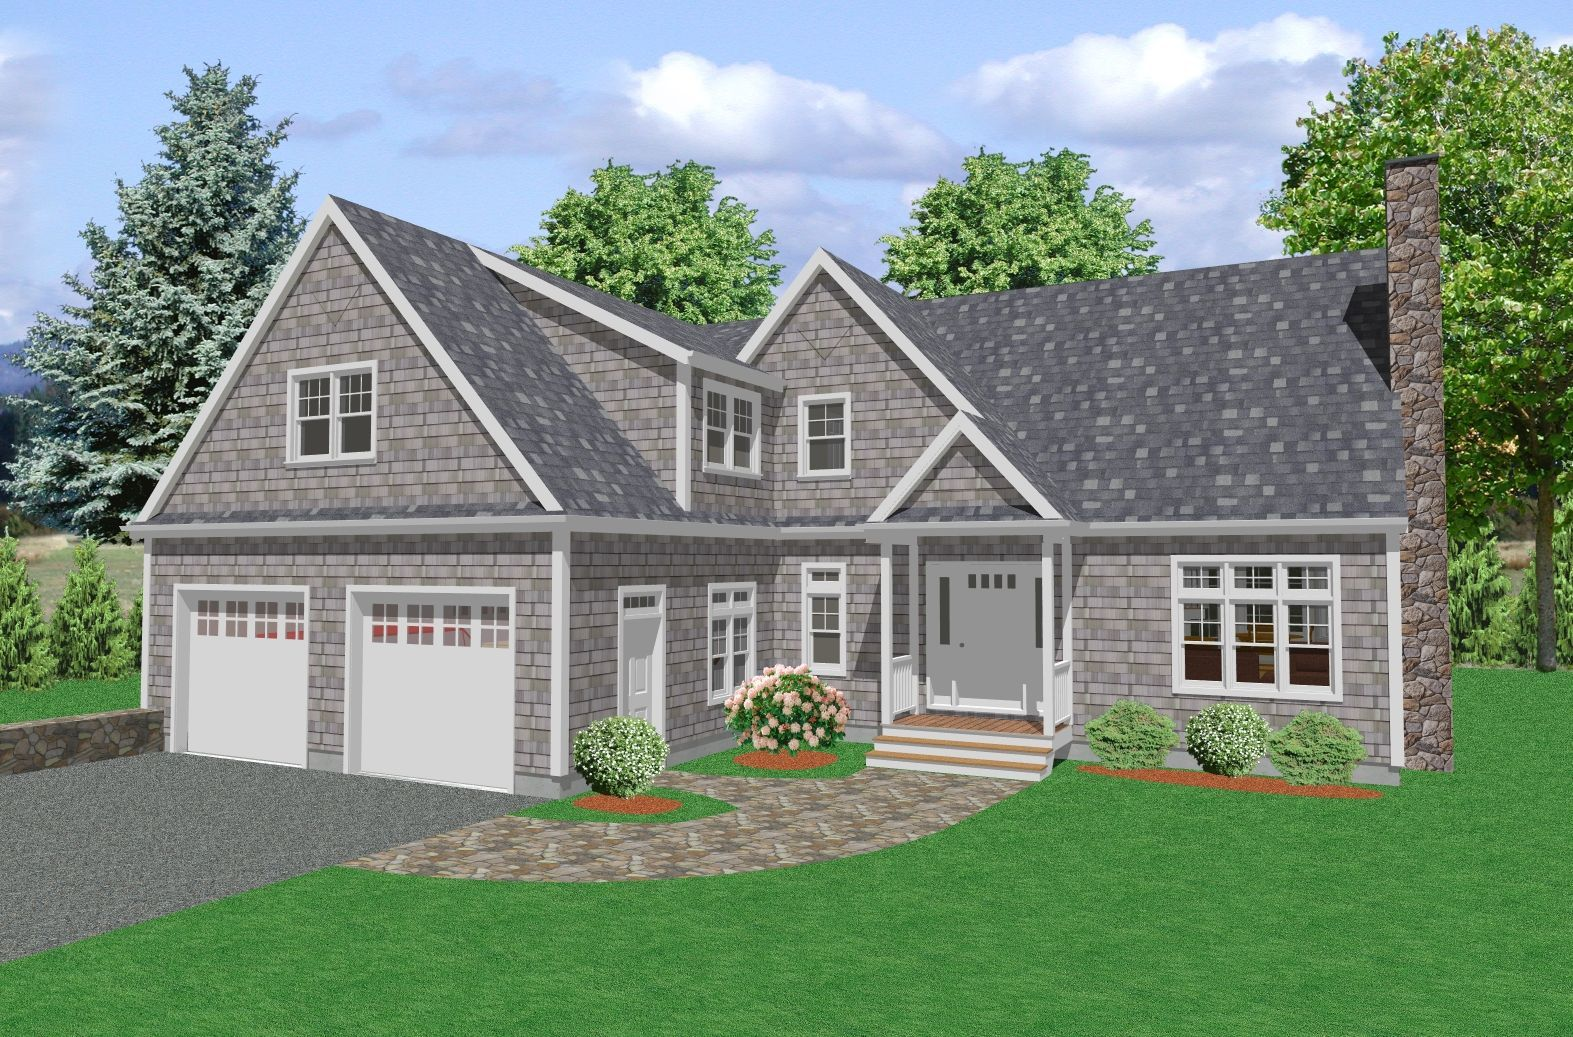 Anything About Inspirational Cape Cod House Take A Look Cape Cod House Plans Cape Cod House Exterior Cape Cod House